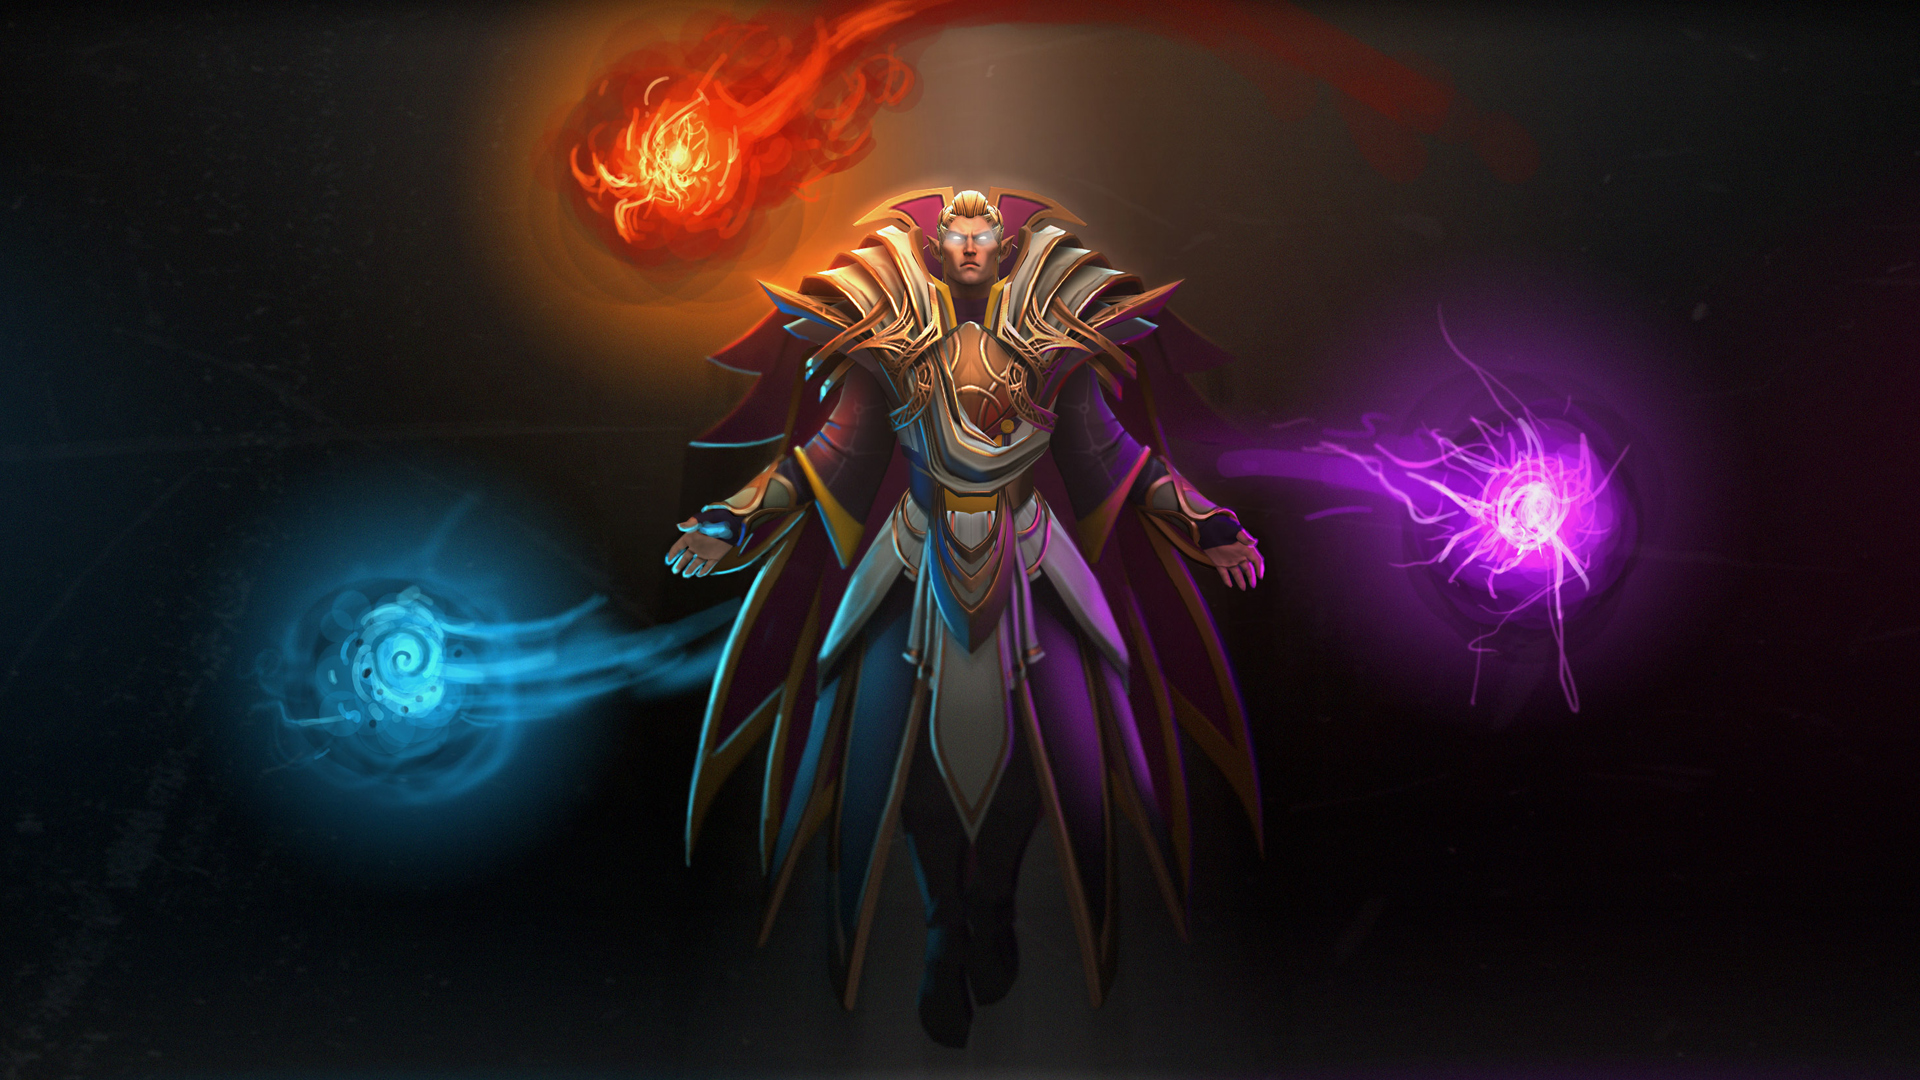 dota 2 game background - photo #38